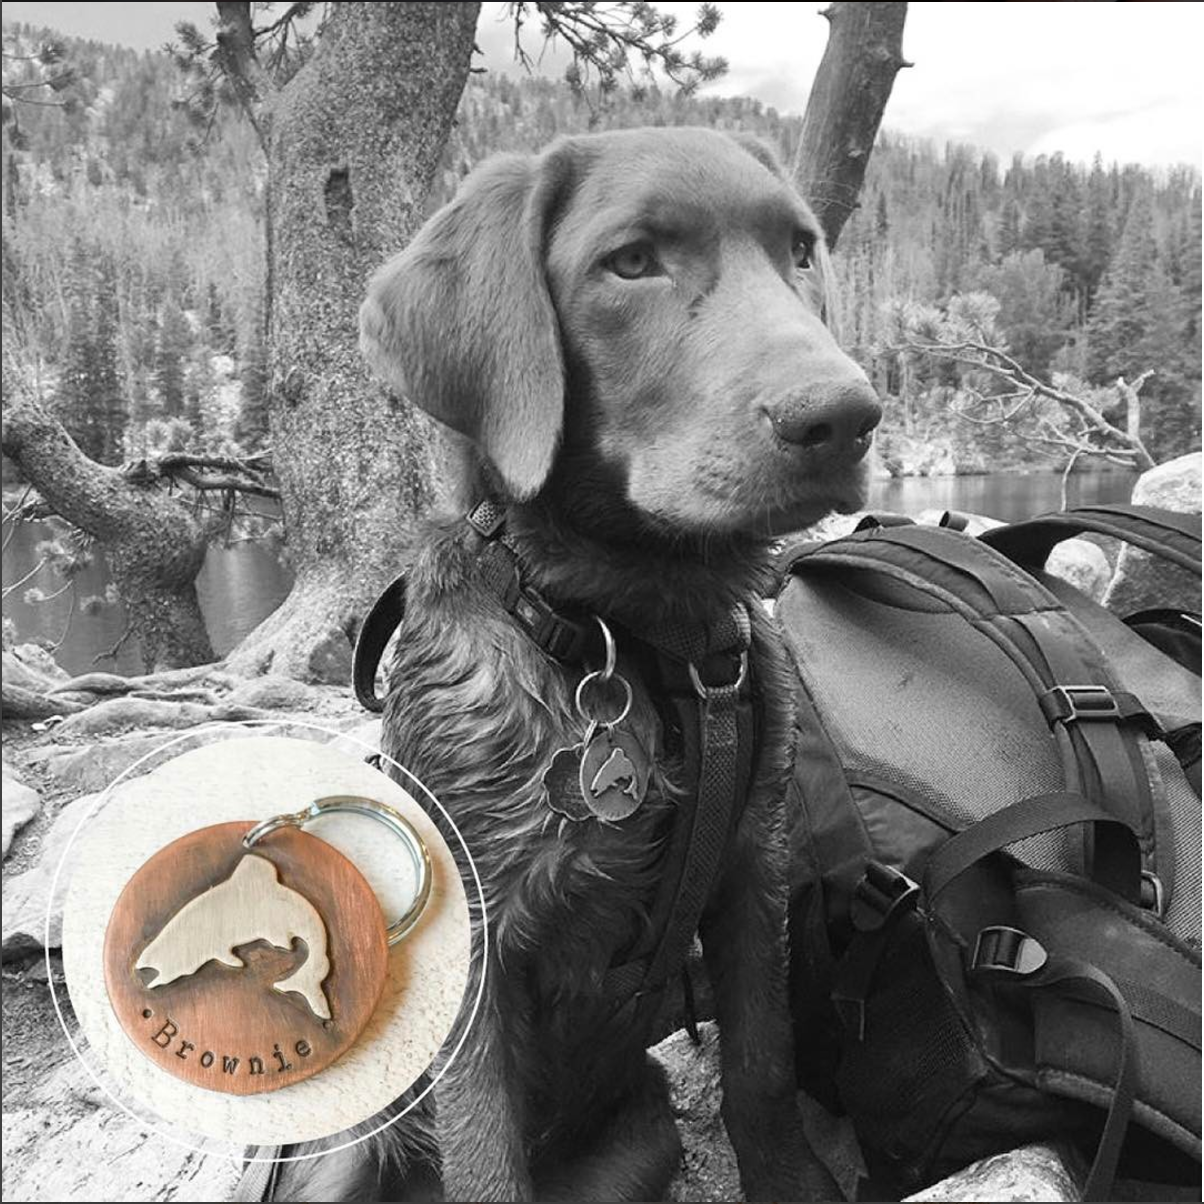 Custom Jumping Trout Pet ID Tag by Hattie Rex.